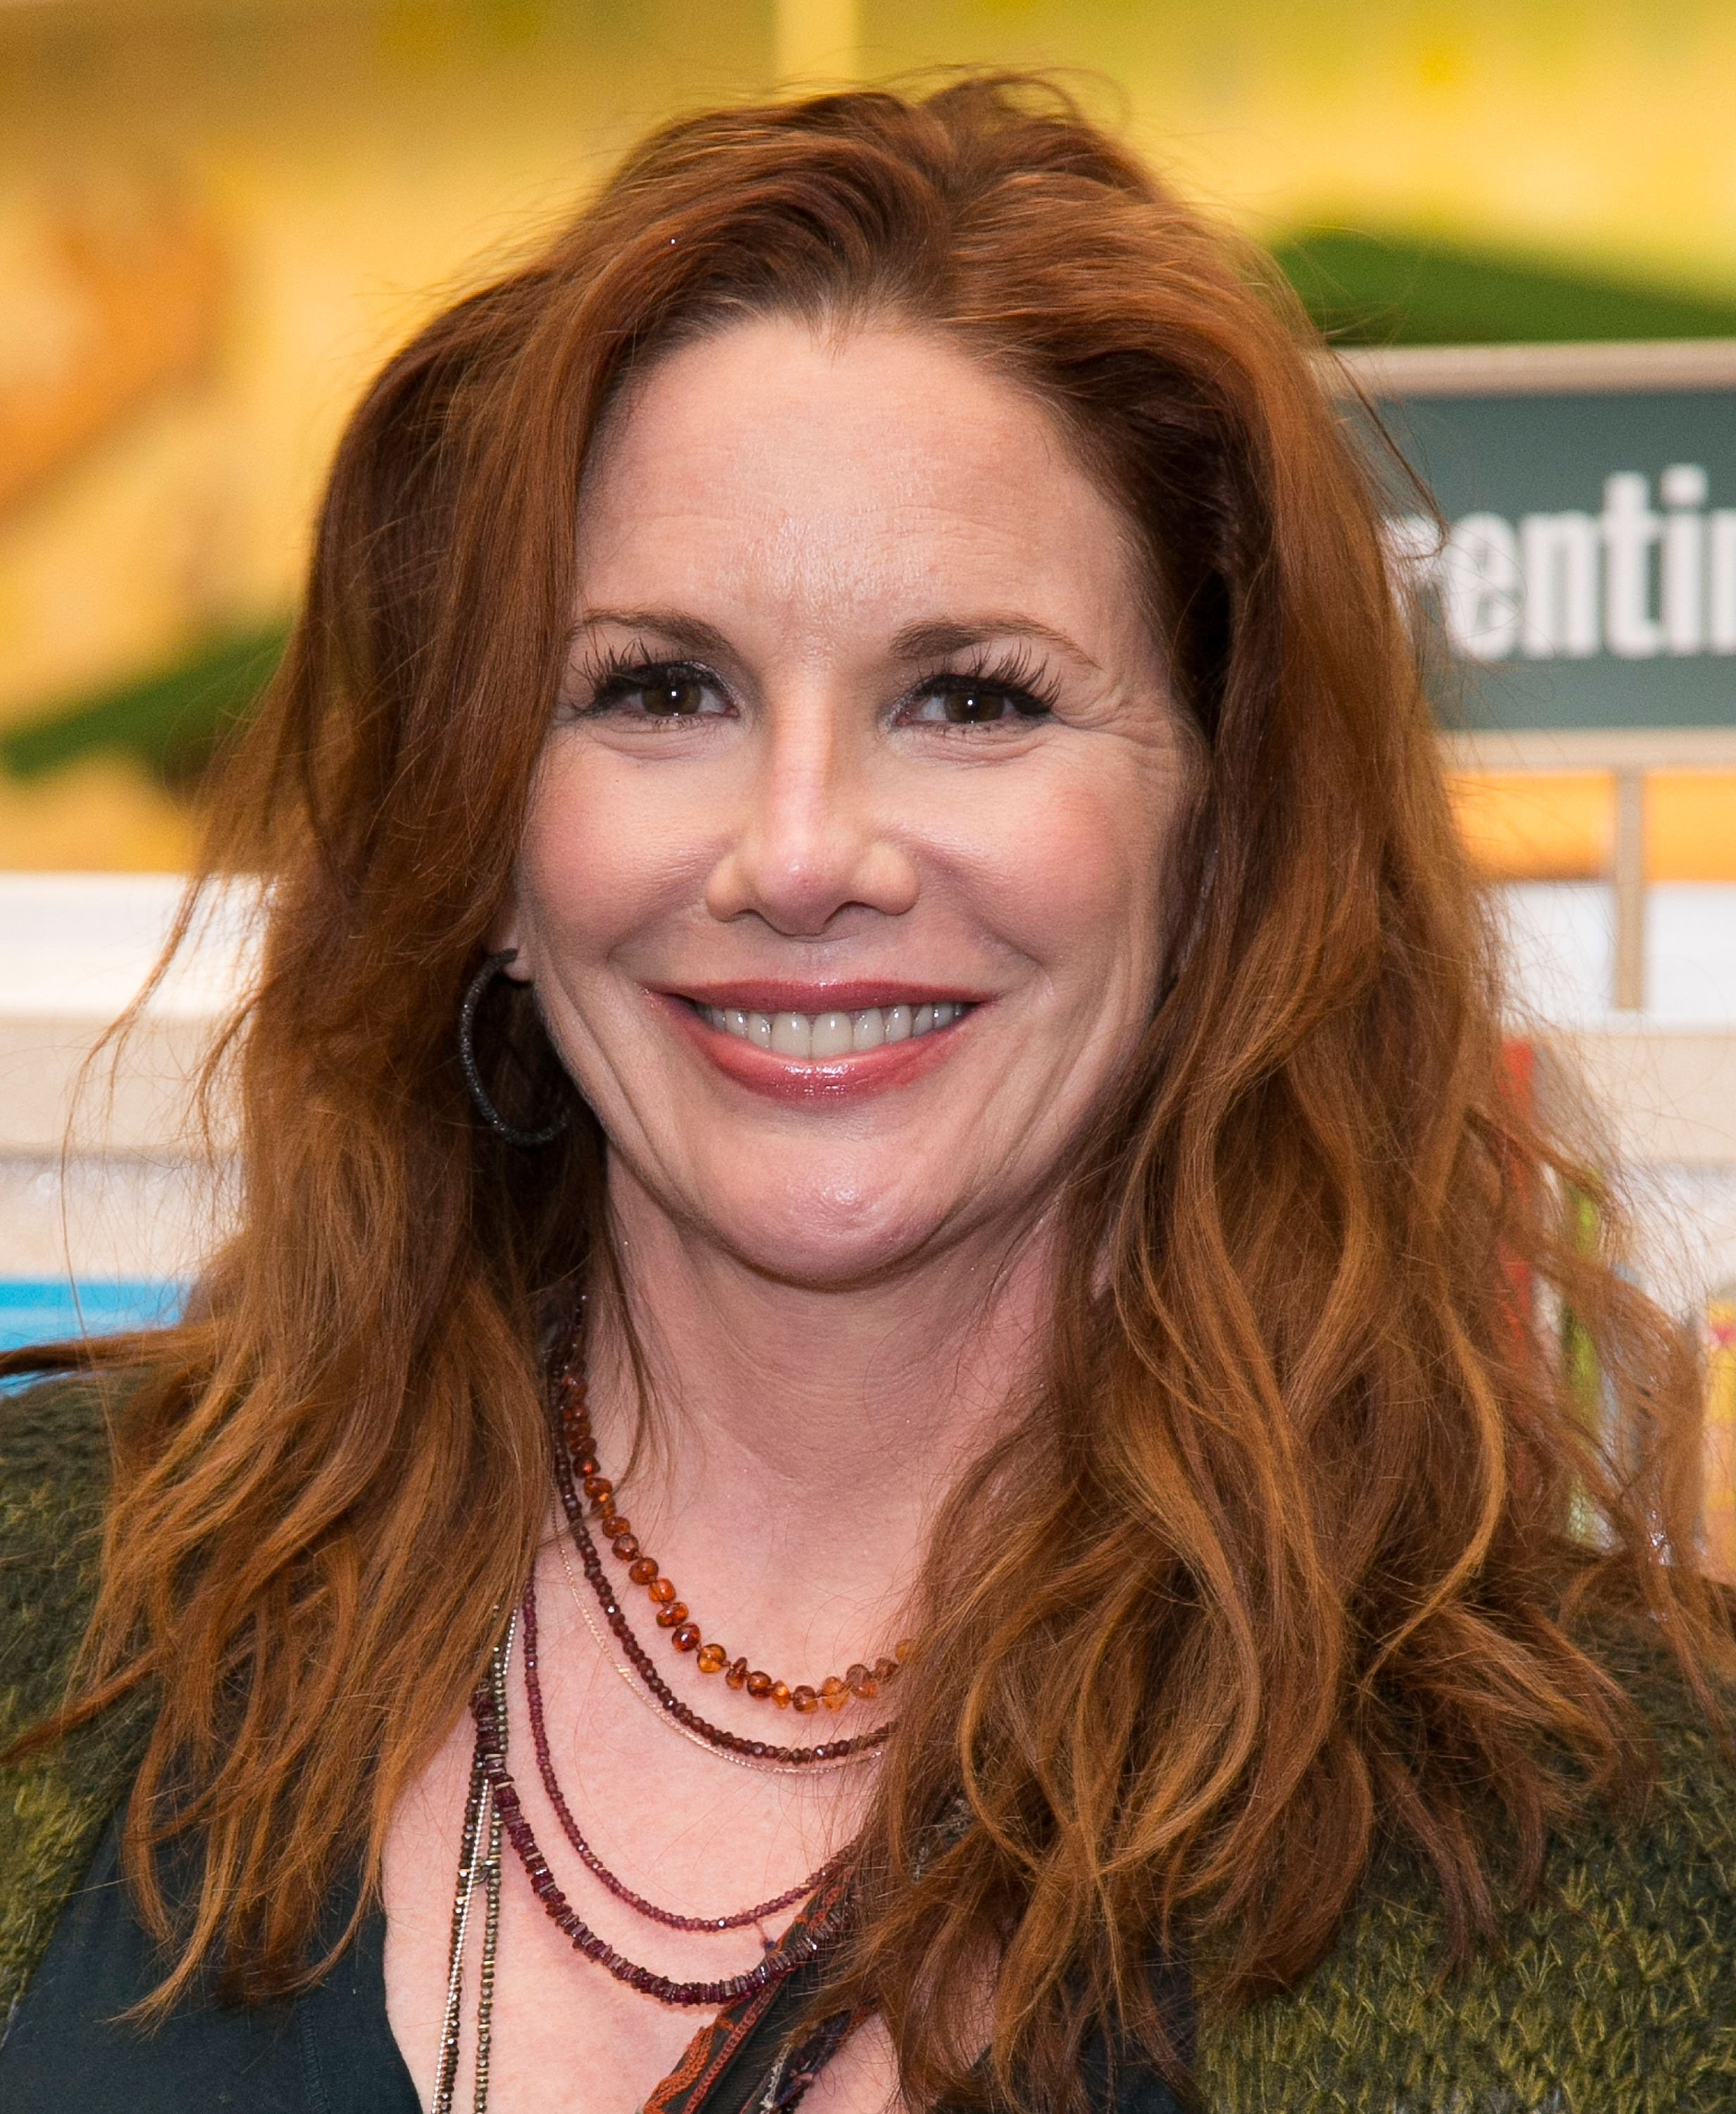 """Actress Melissa Gilbert signs and discusses her new book """"My Prairie Cookbook"""" at Barnes & Noble bookstore at The Grove on March 18, 2015 in Los Angeles, California. 